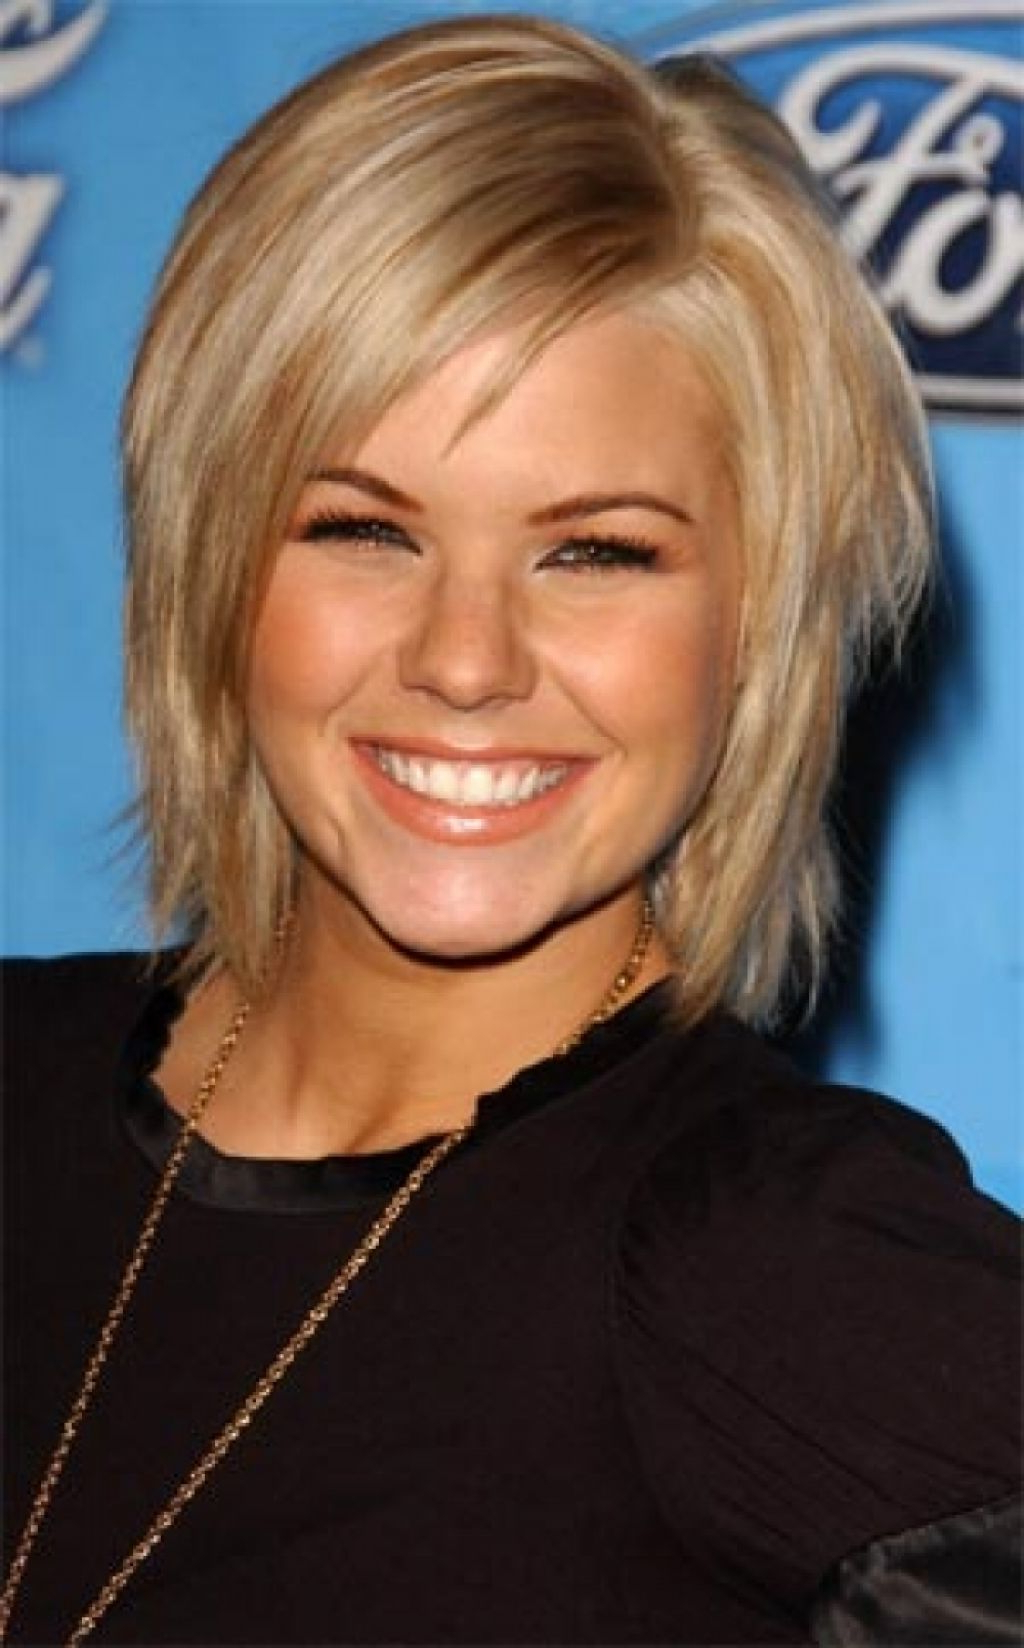 Best And Newest New Medium Hairstyles With Regard To New Haircut Ideas For Medium Length Hair – Hairstyle For Women & Man (View 6 of 20)